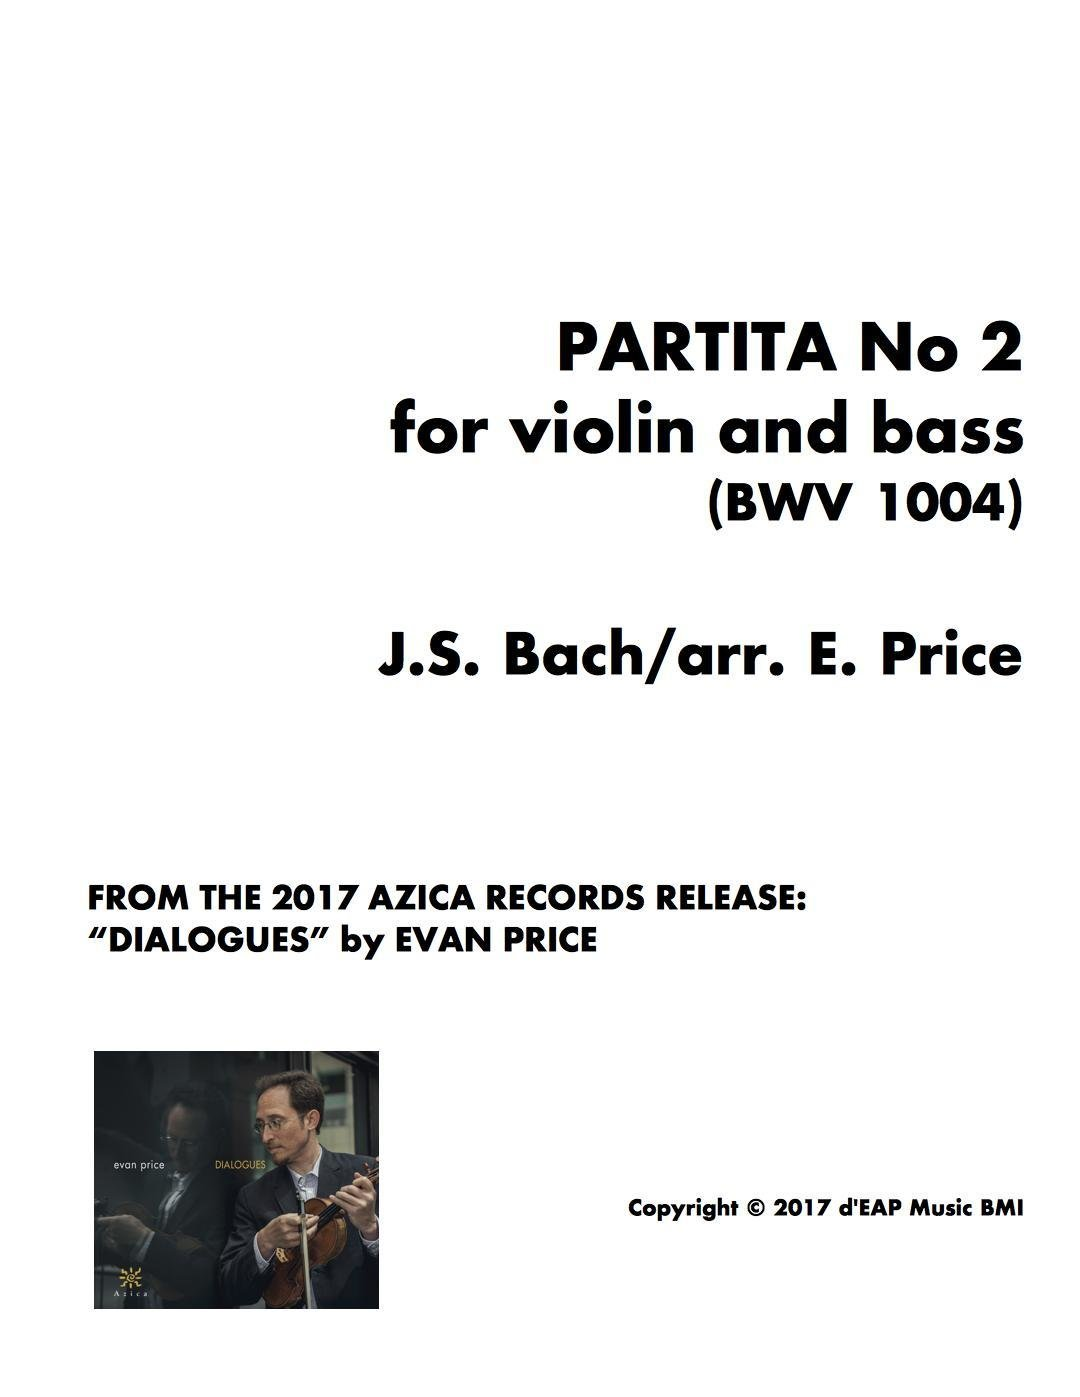 Partita No 2 for violin and bass (BWV 1004)